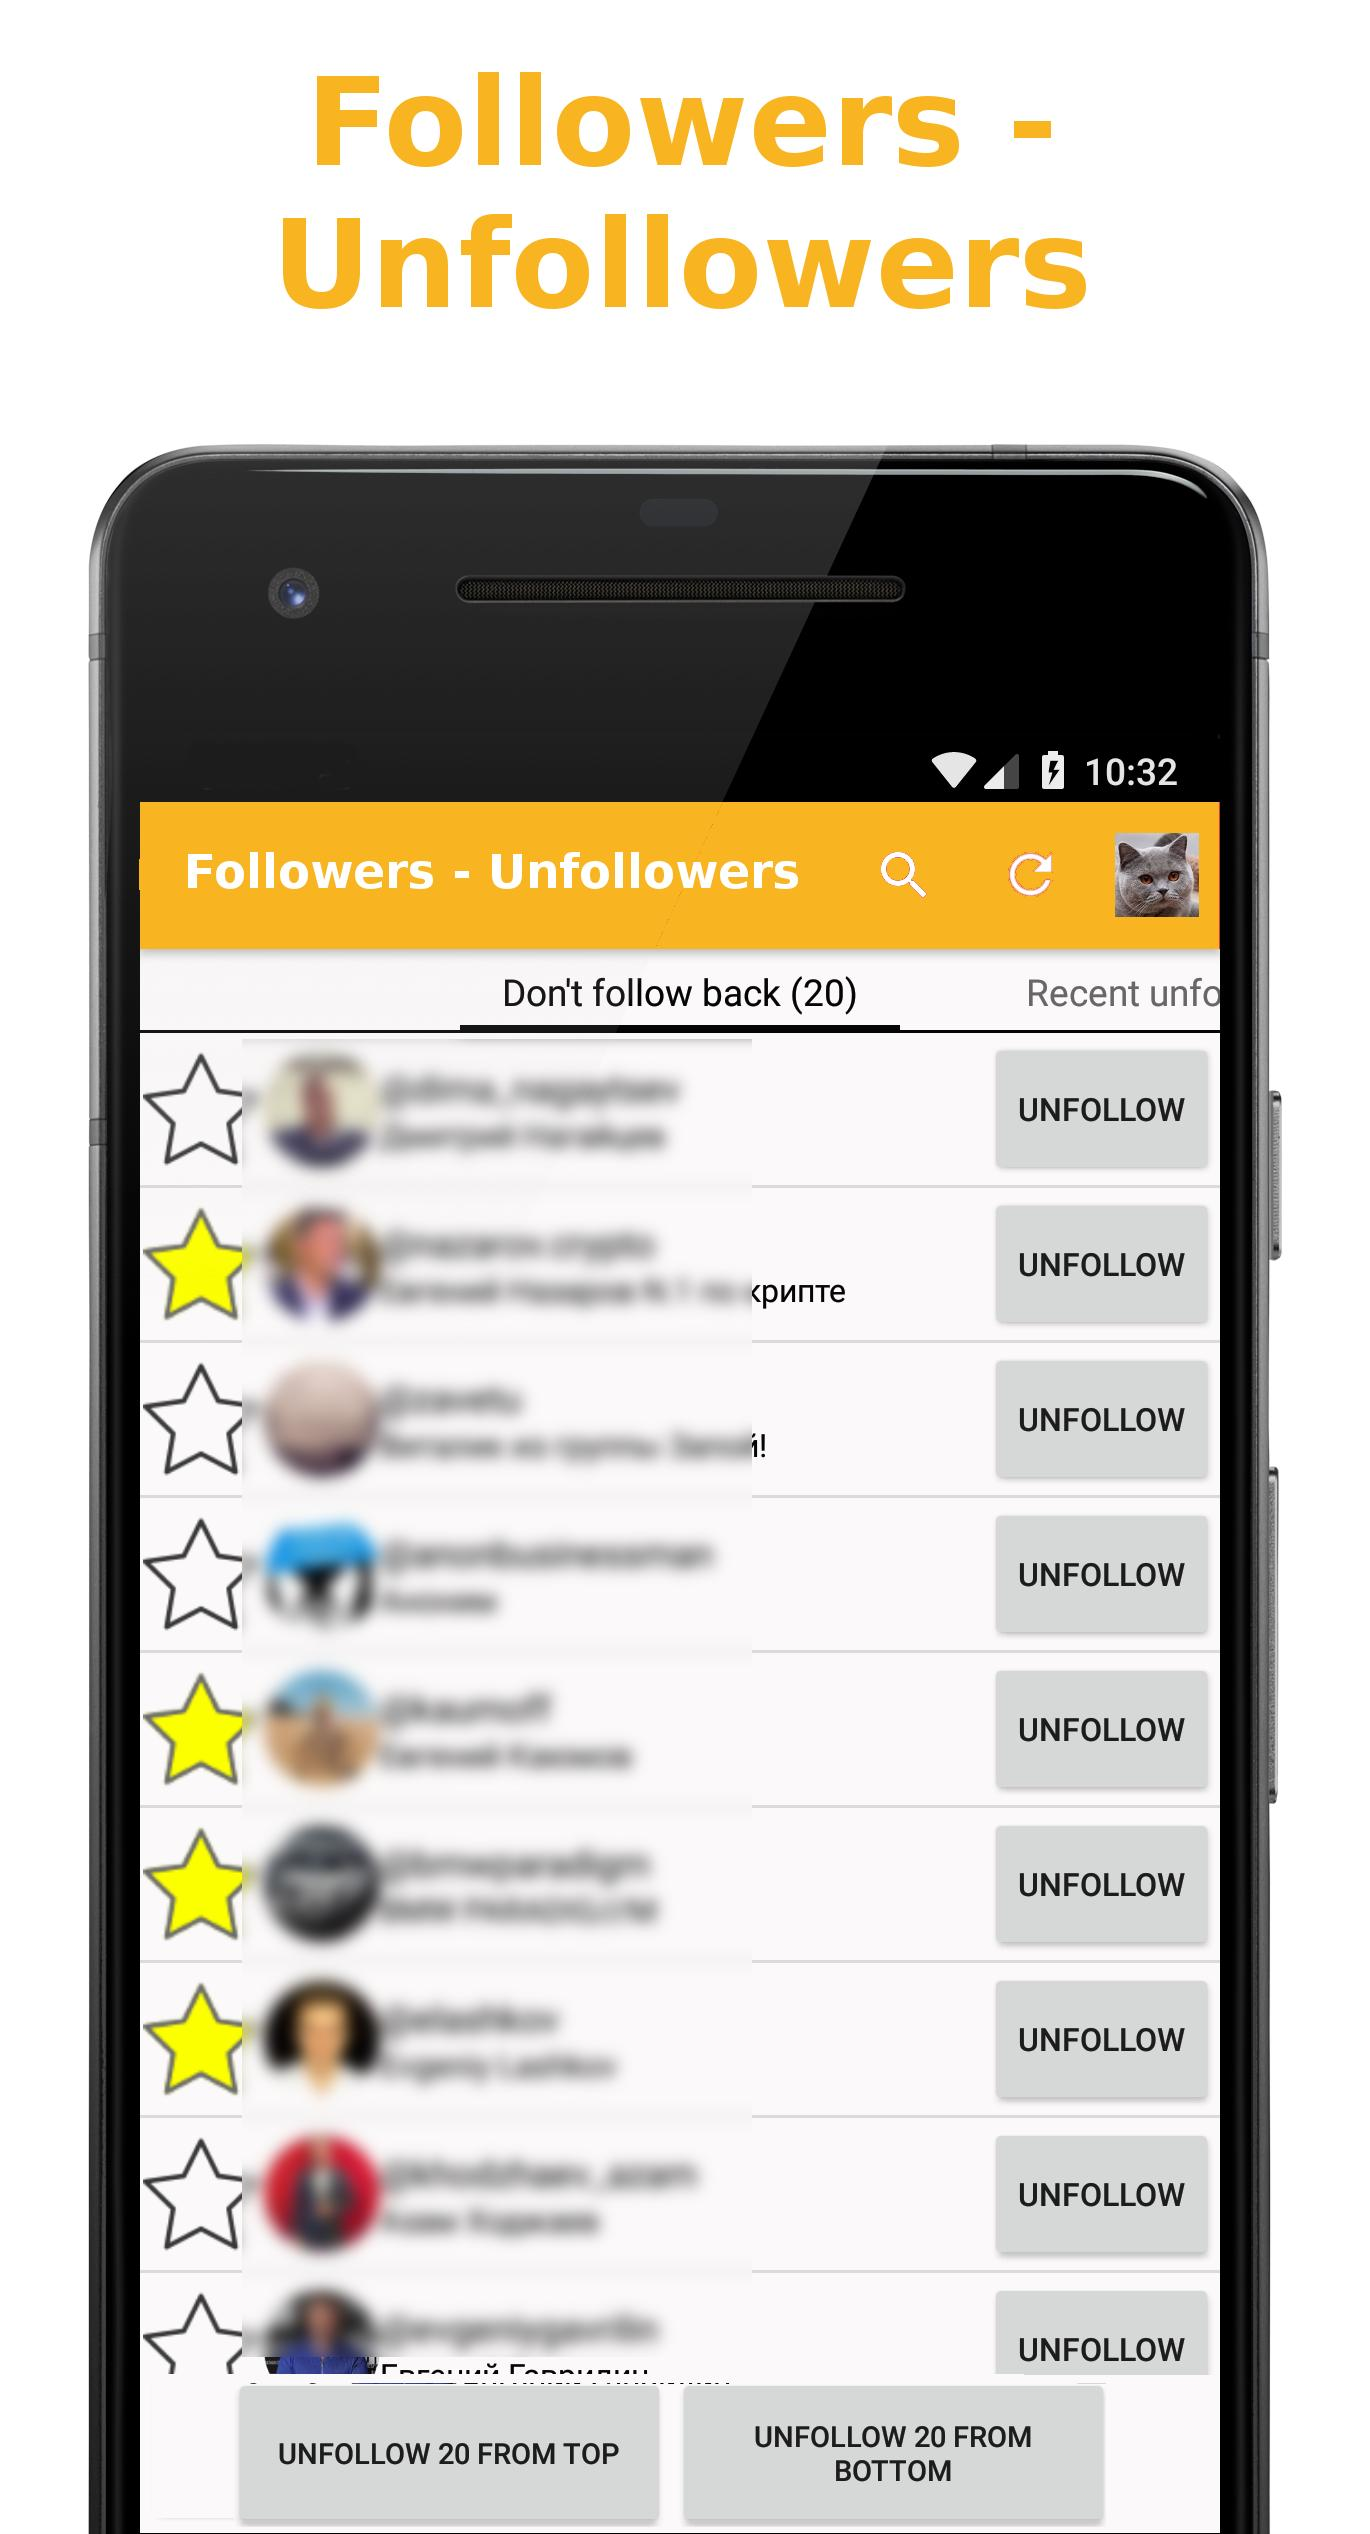 Followers - Unfollowers for Android - APK Download